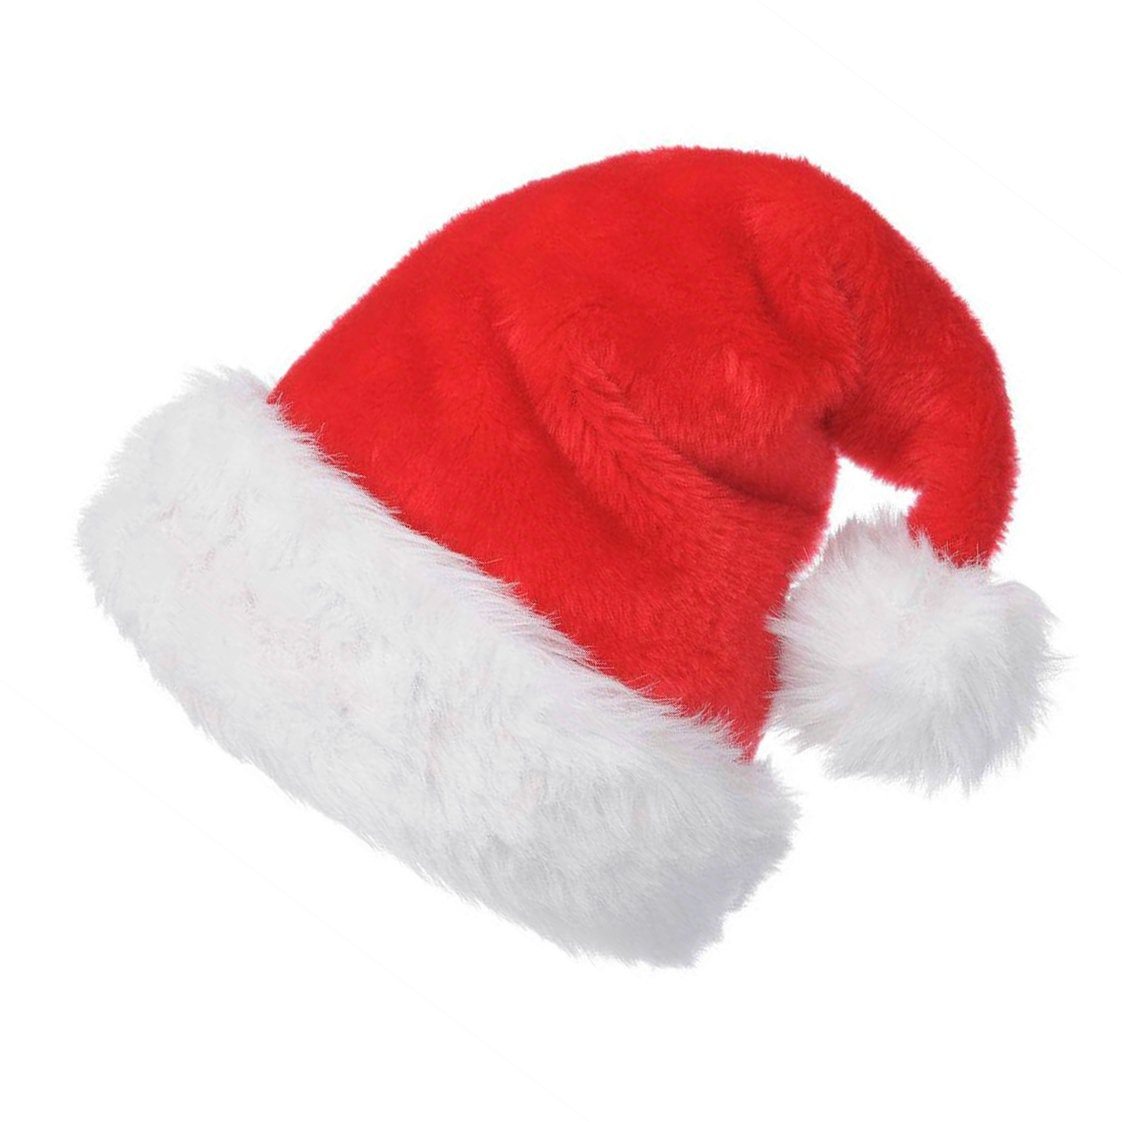 Christmas Hats Red Santa Hat for Child Kids Xmas Decorations 016S